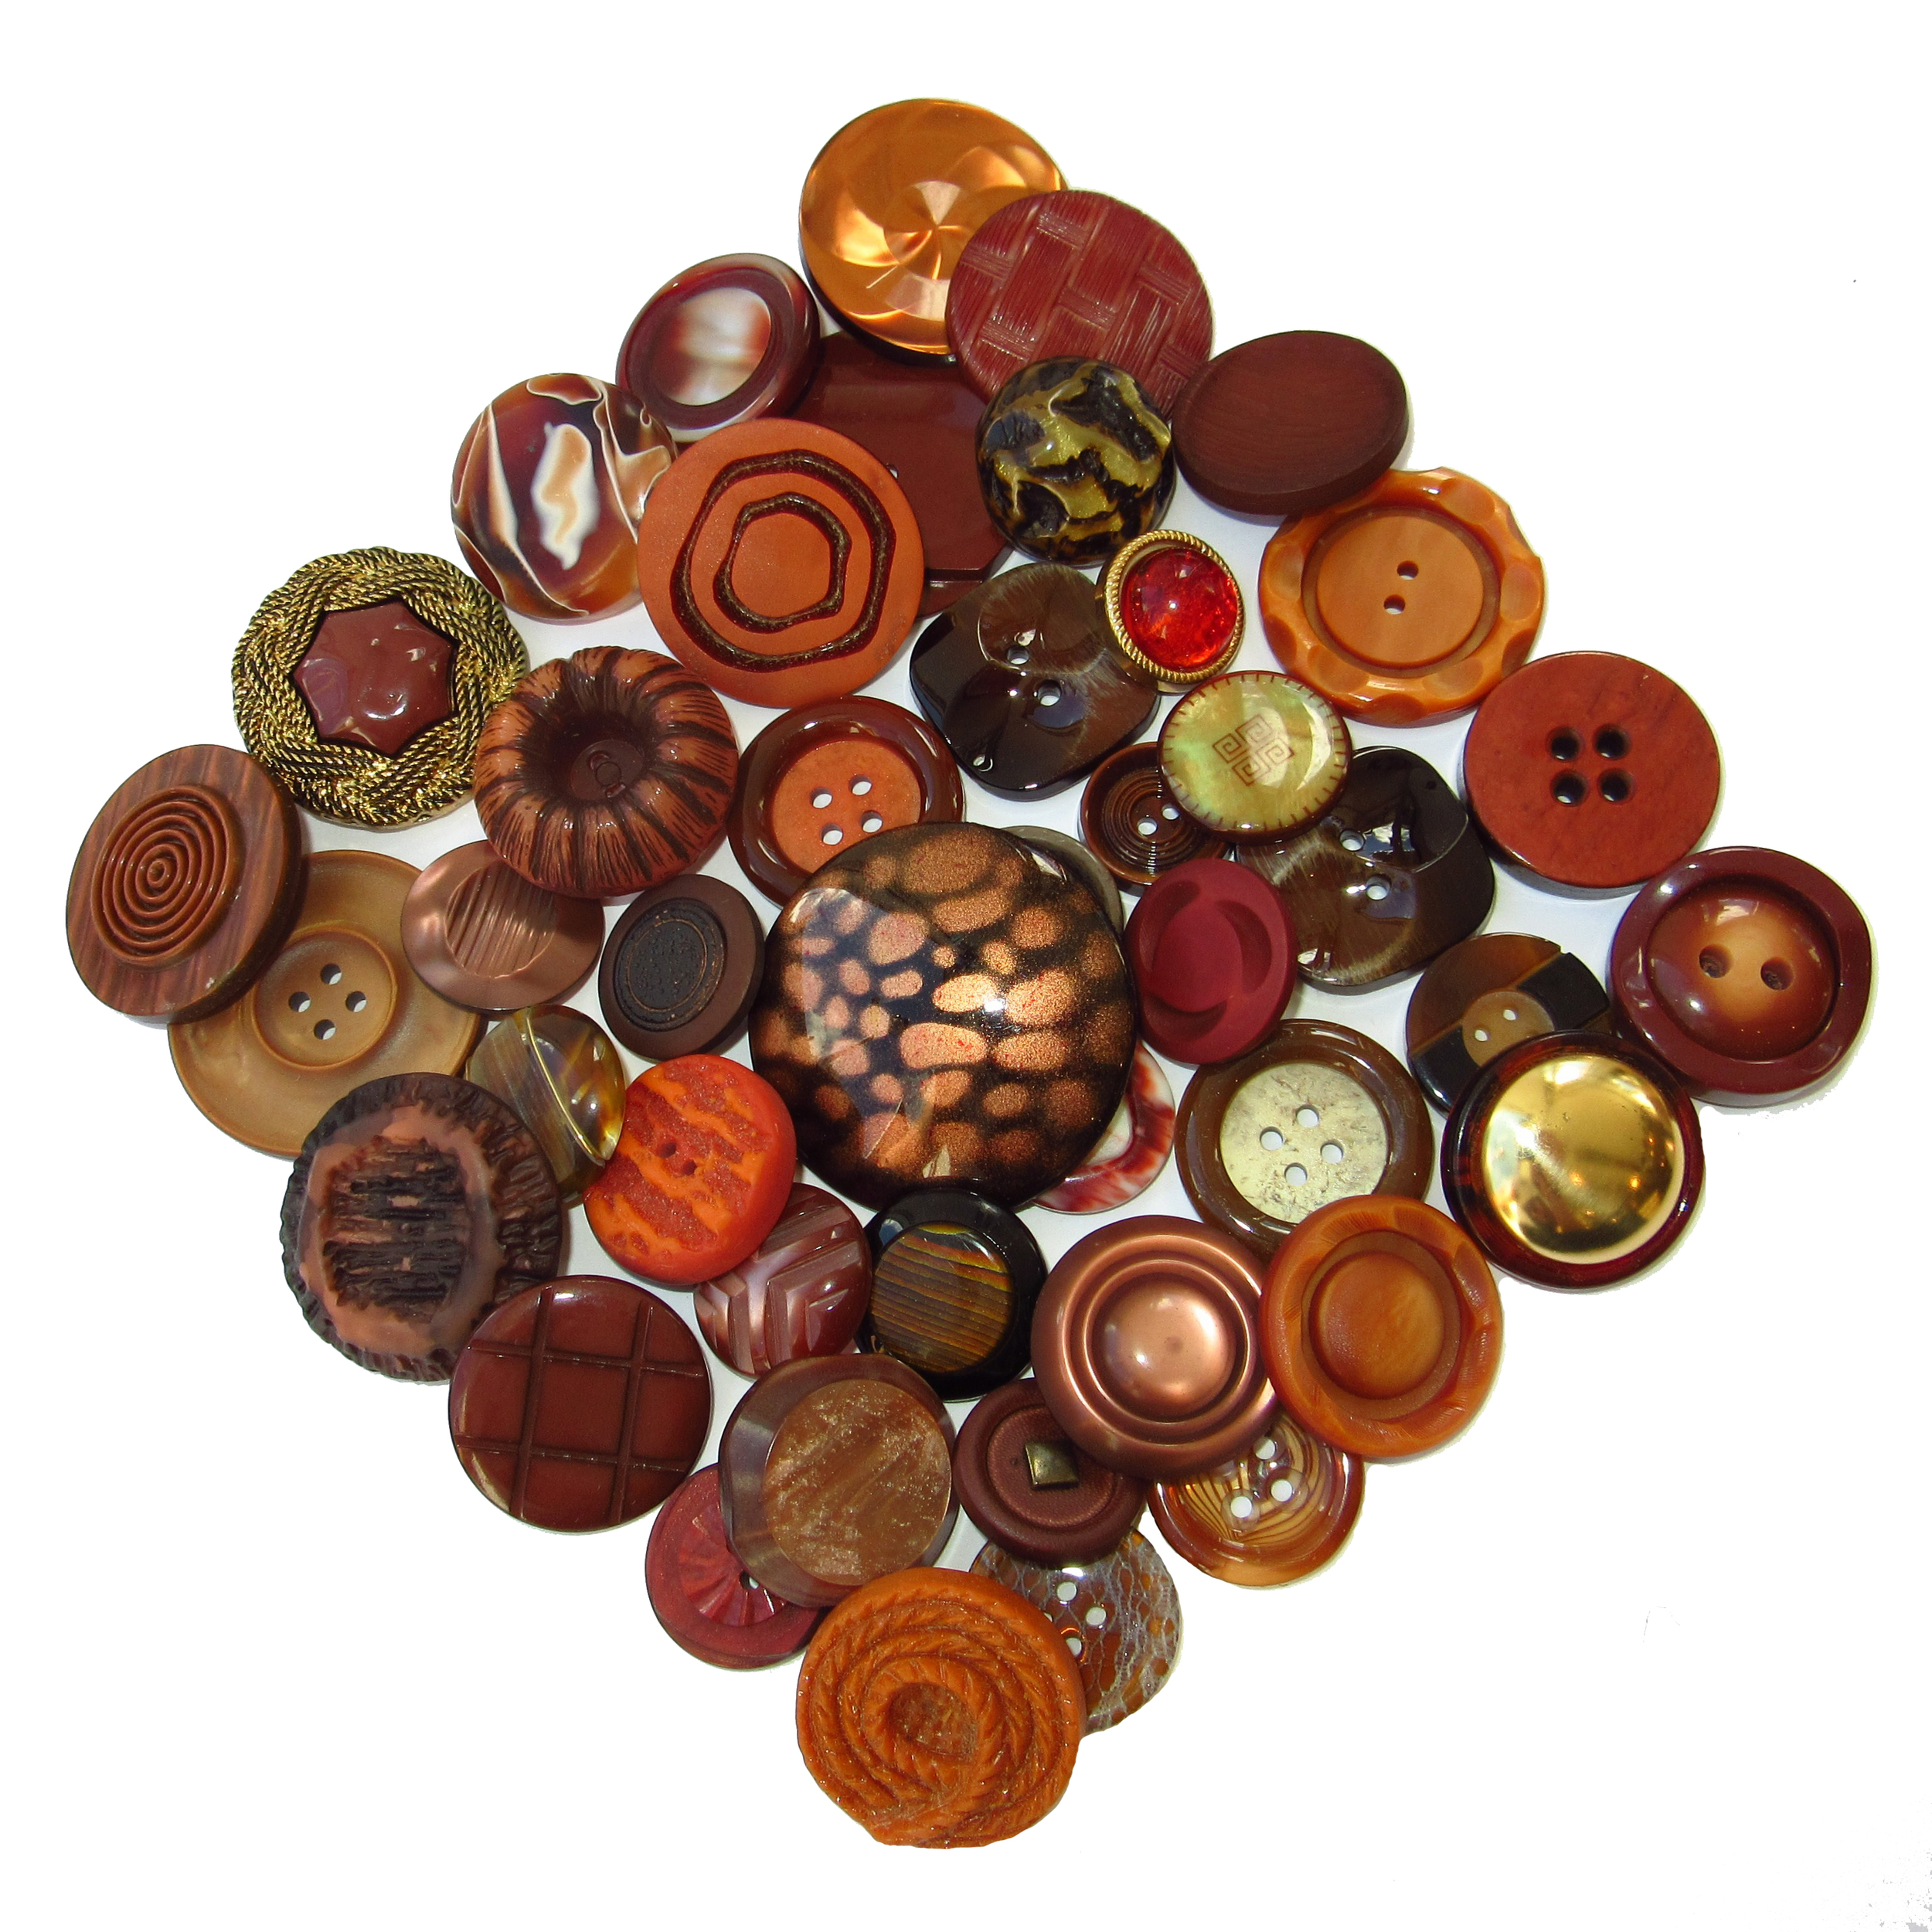 Copper colored buttons